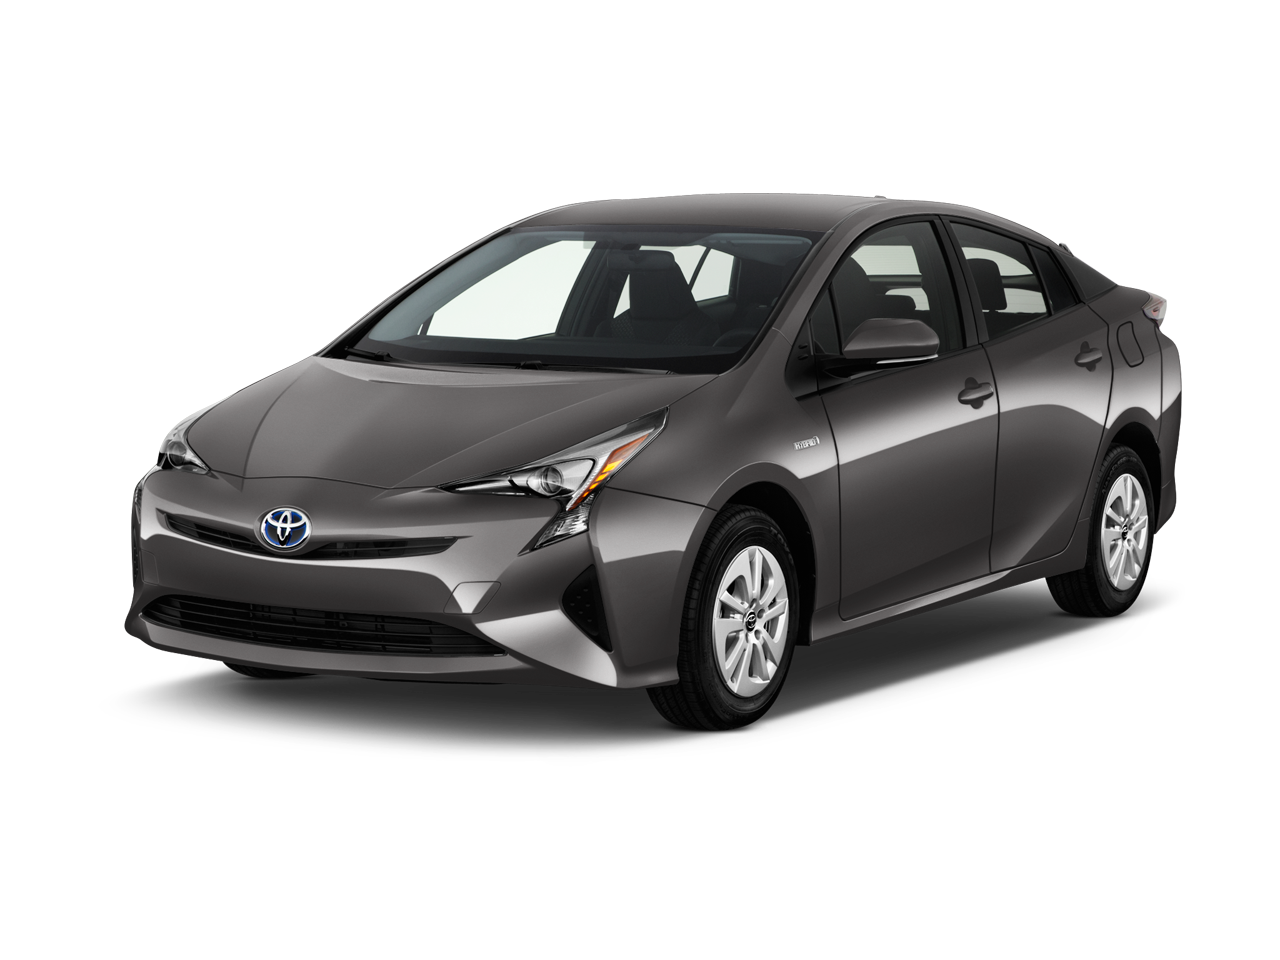 new 2017 prius between 0 miles and 5 miles for sale. Black Bedroom Furniture Sets. Home Design Ideas